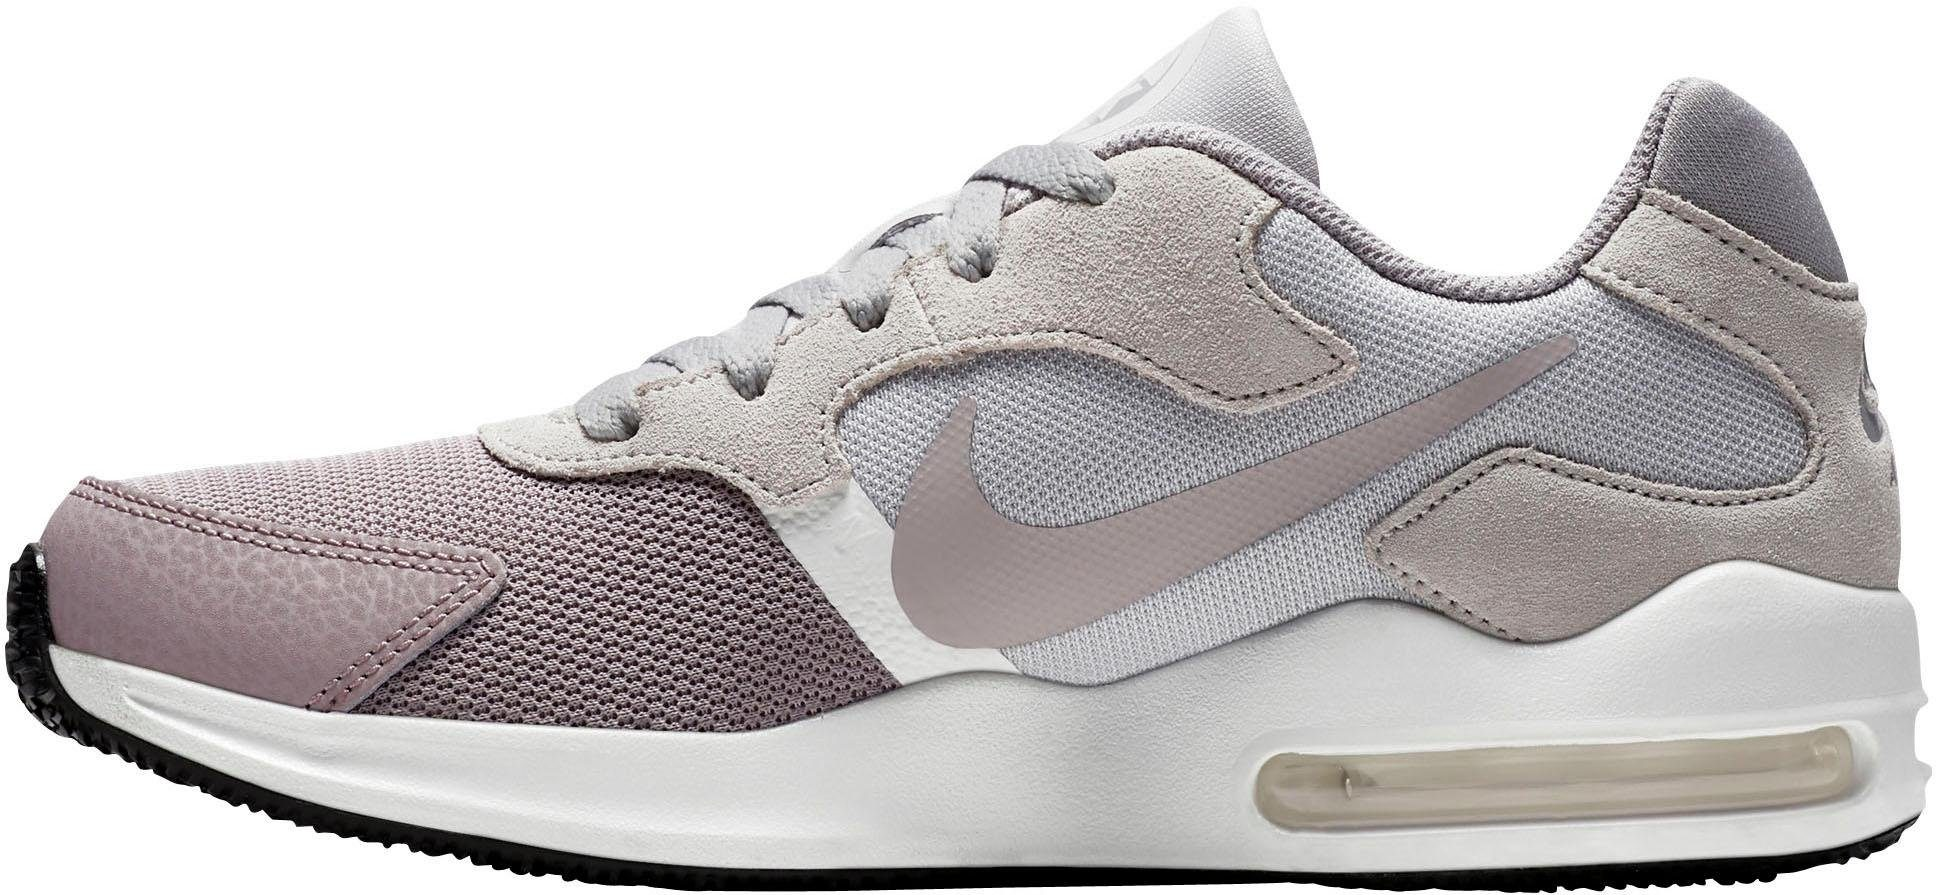 Roze Nike Sneakers Air Max Wmns Ruse dqWsG3riu